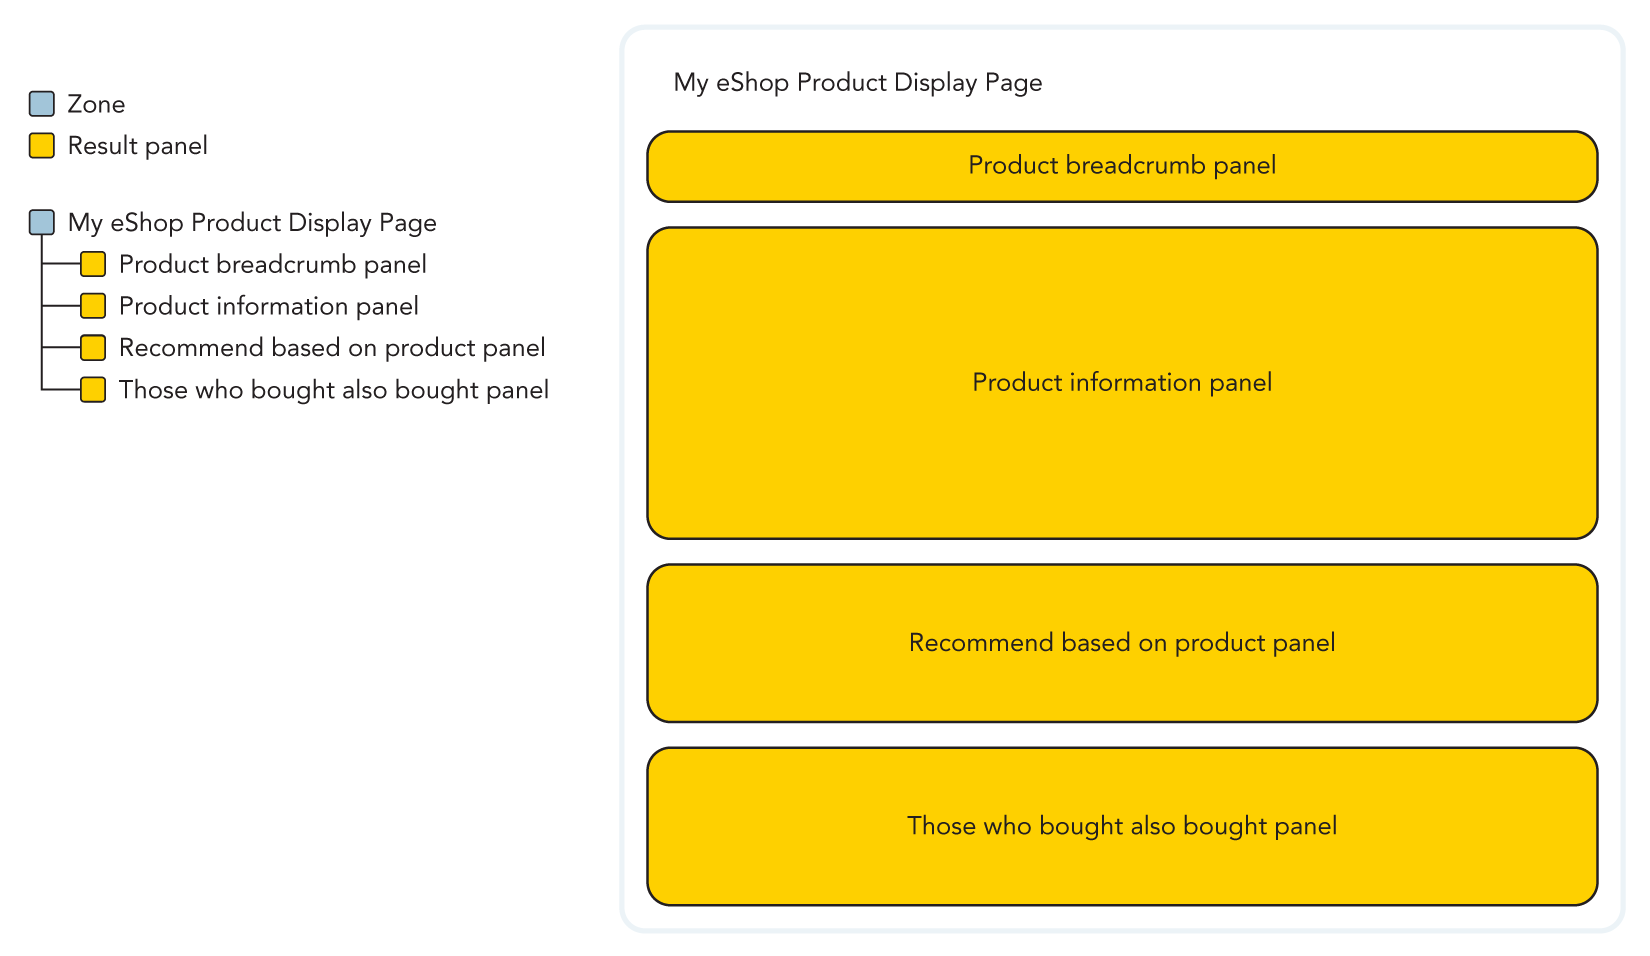 Illustration of the panel hierarchy of a product display page